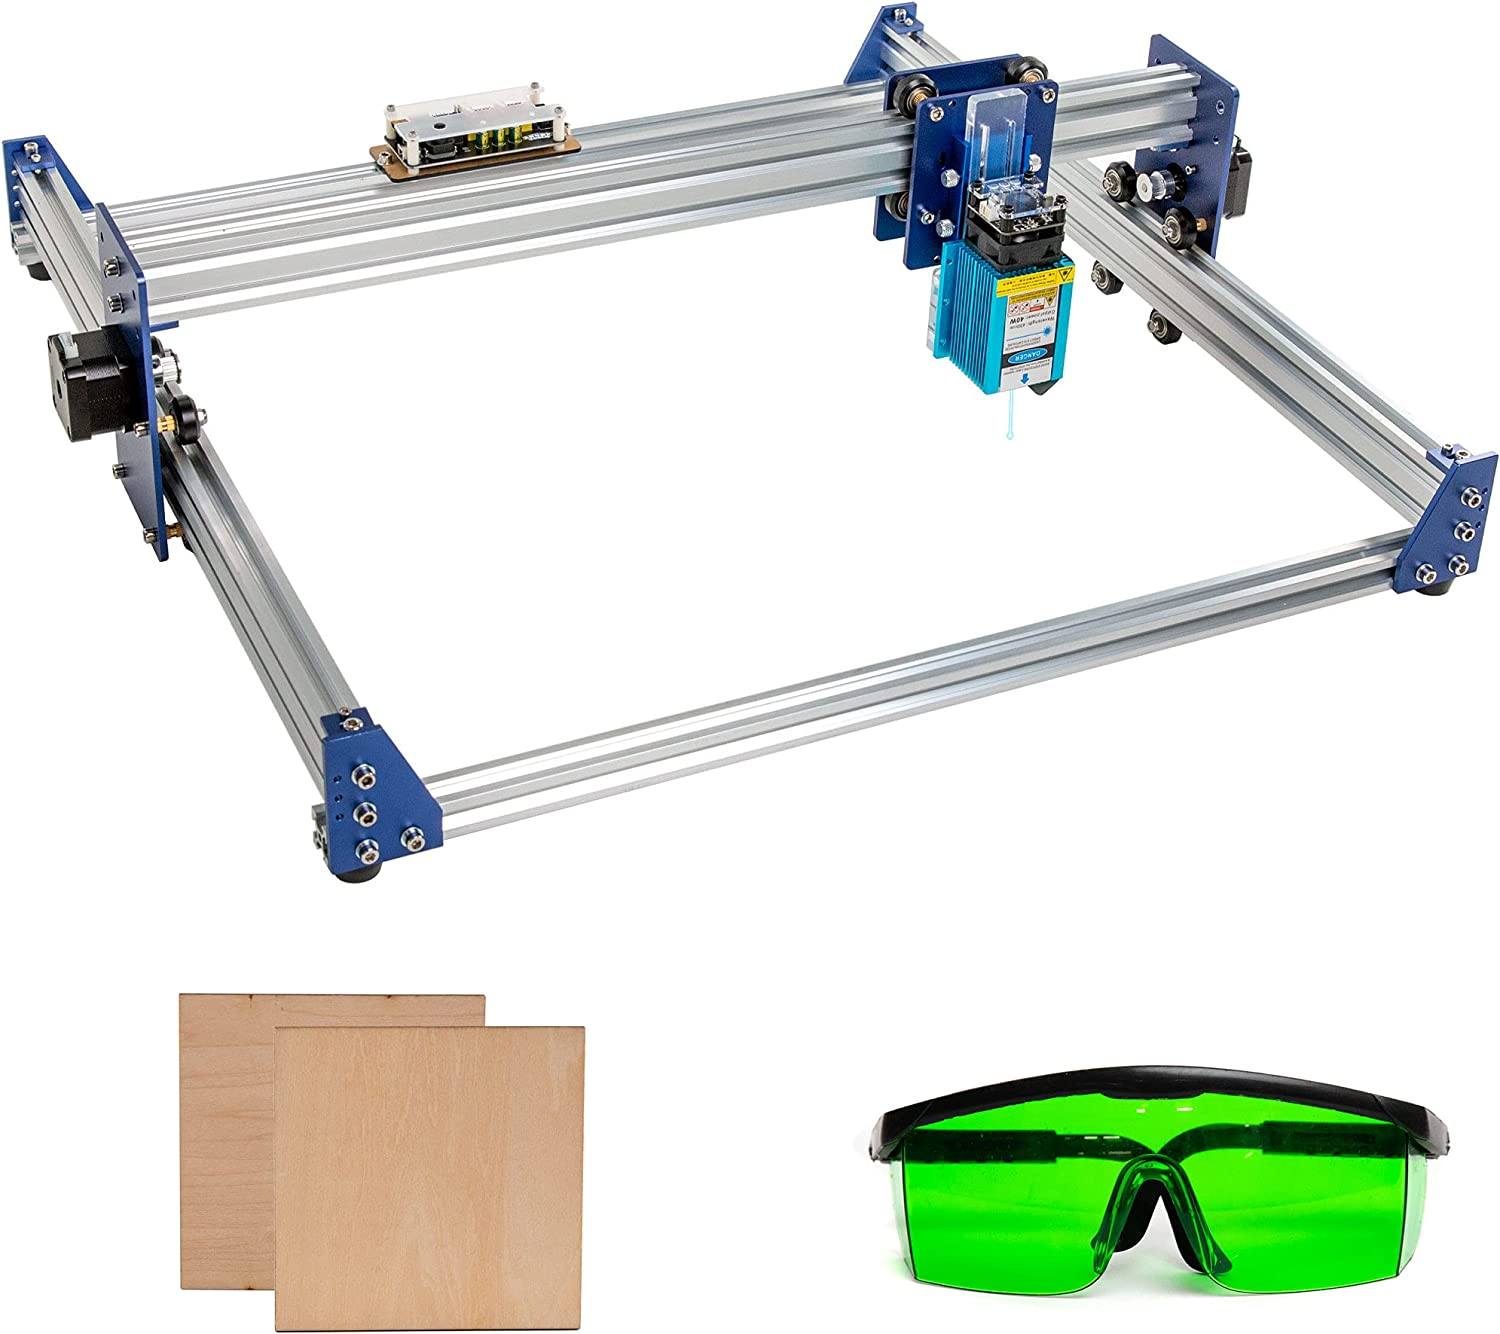 Limited time trial price Laser Max 46% OFF Engraver Engraving – Ma Machine